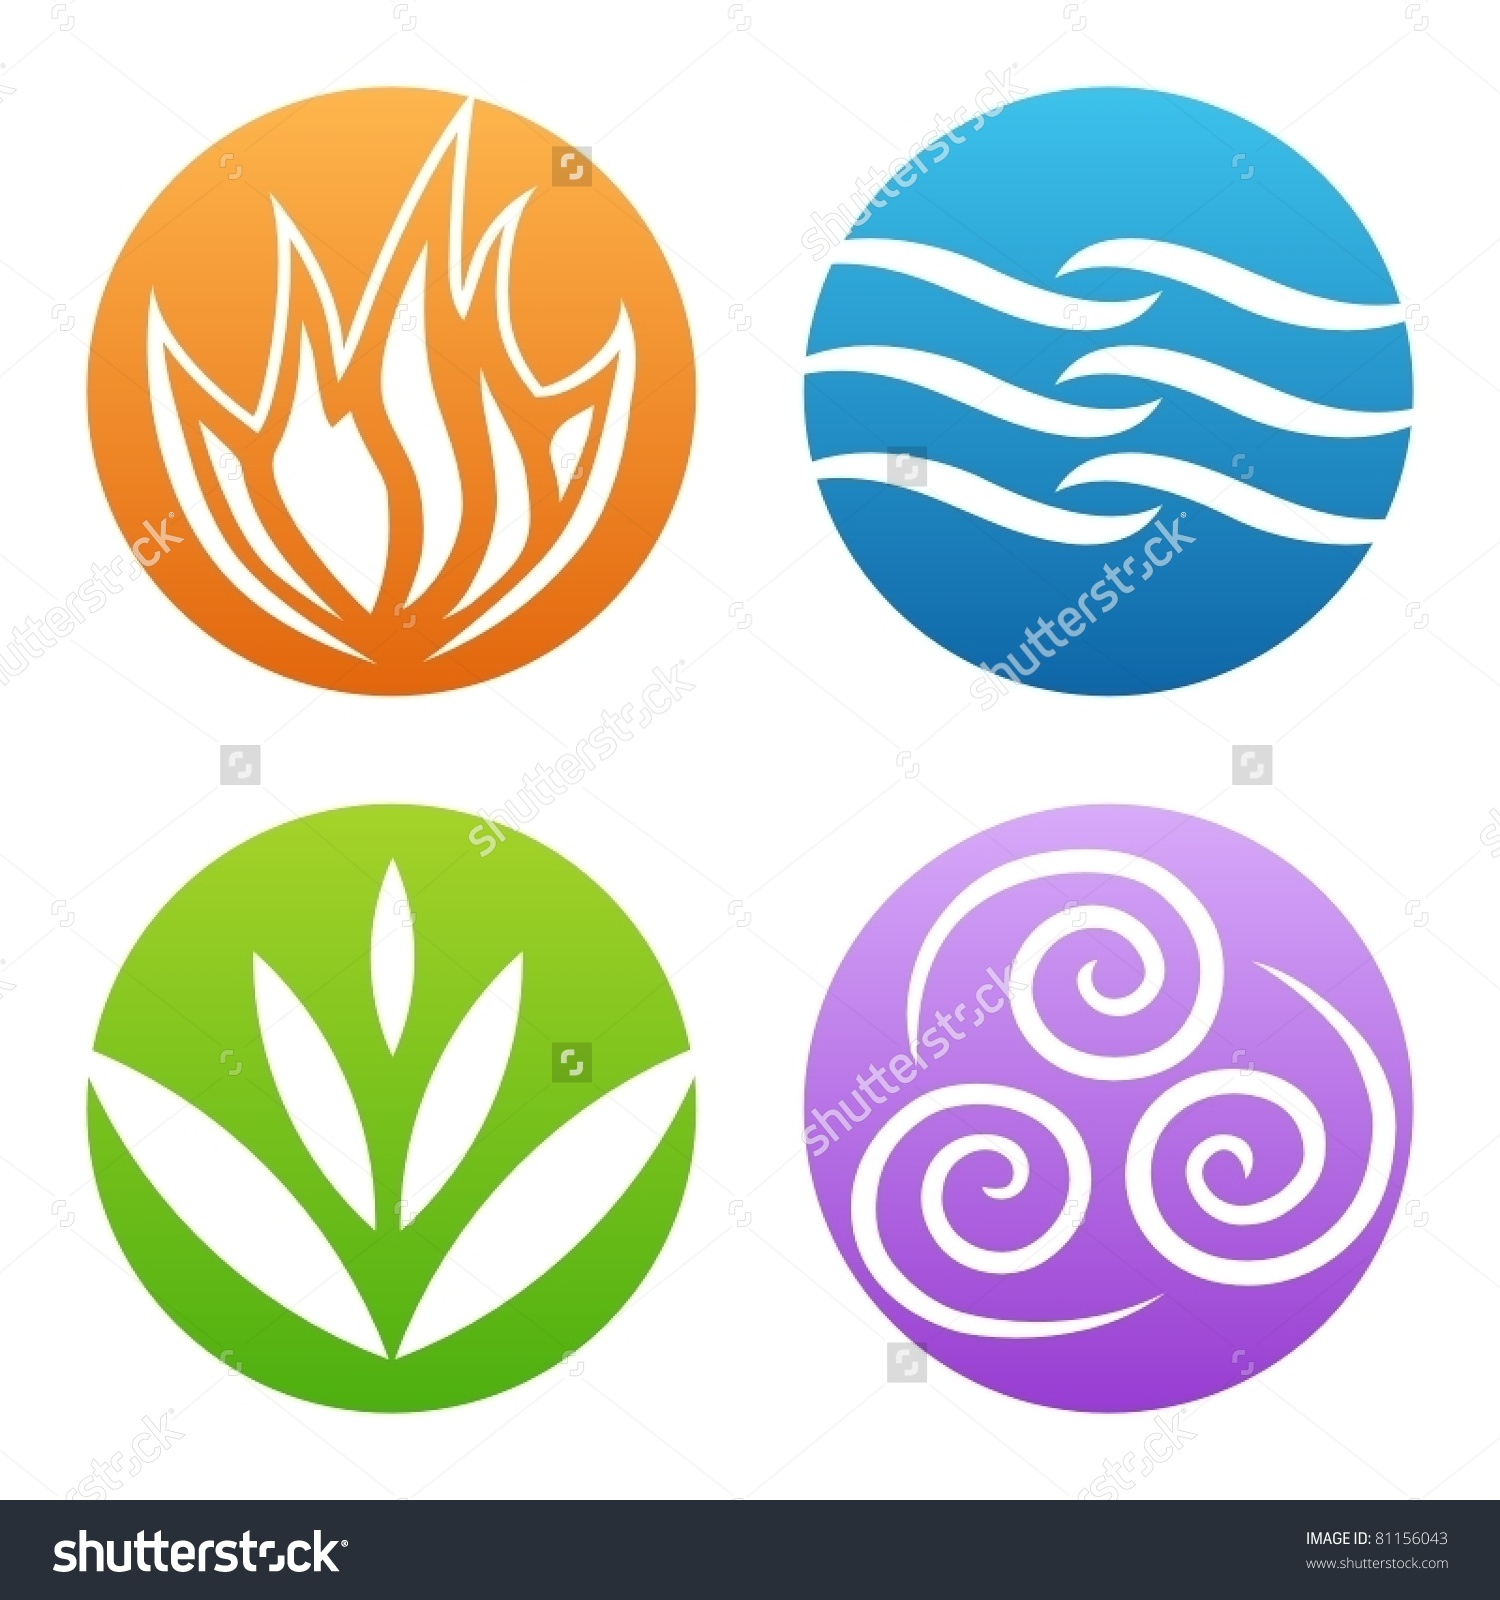 Elements clipart lead Wind Clip Fire & Shutterstock